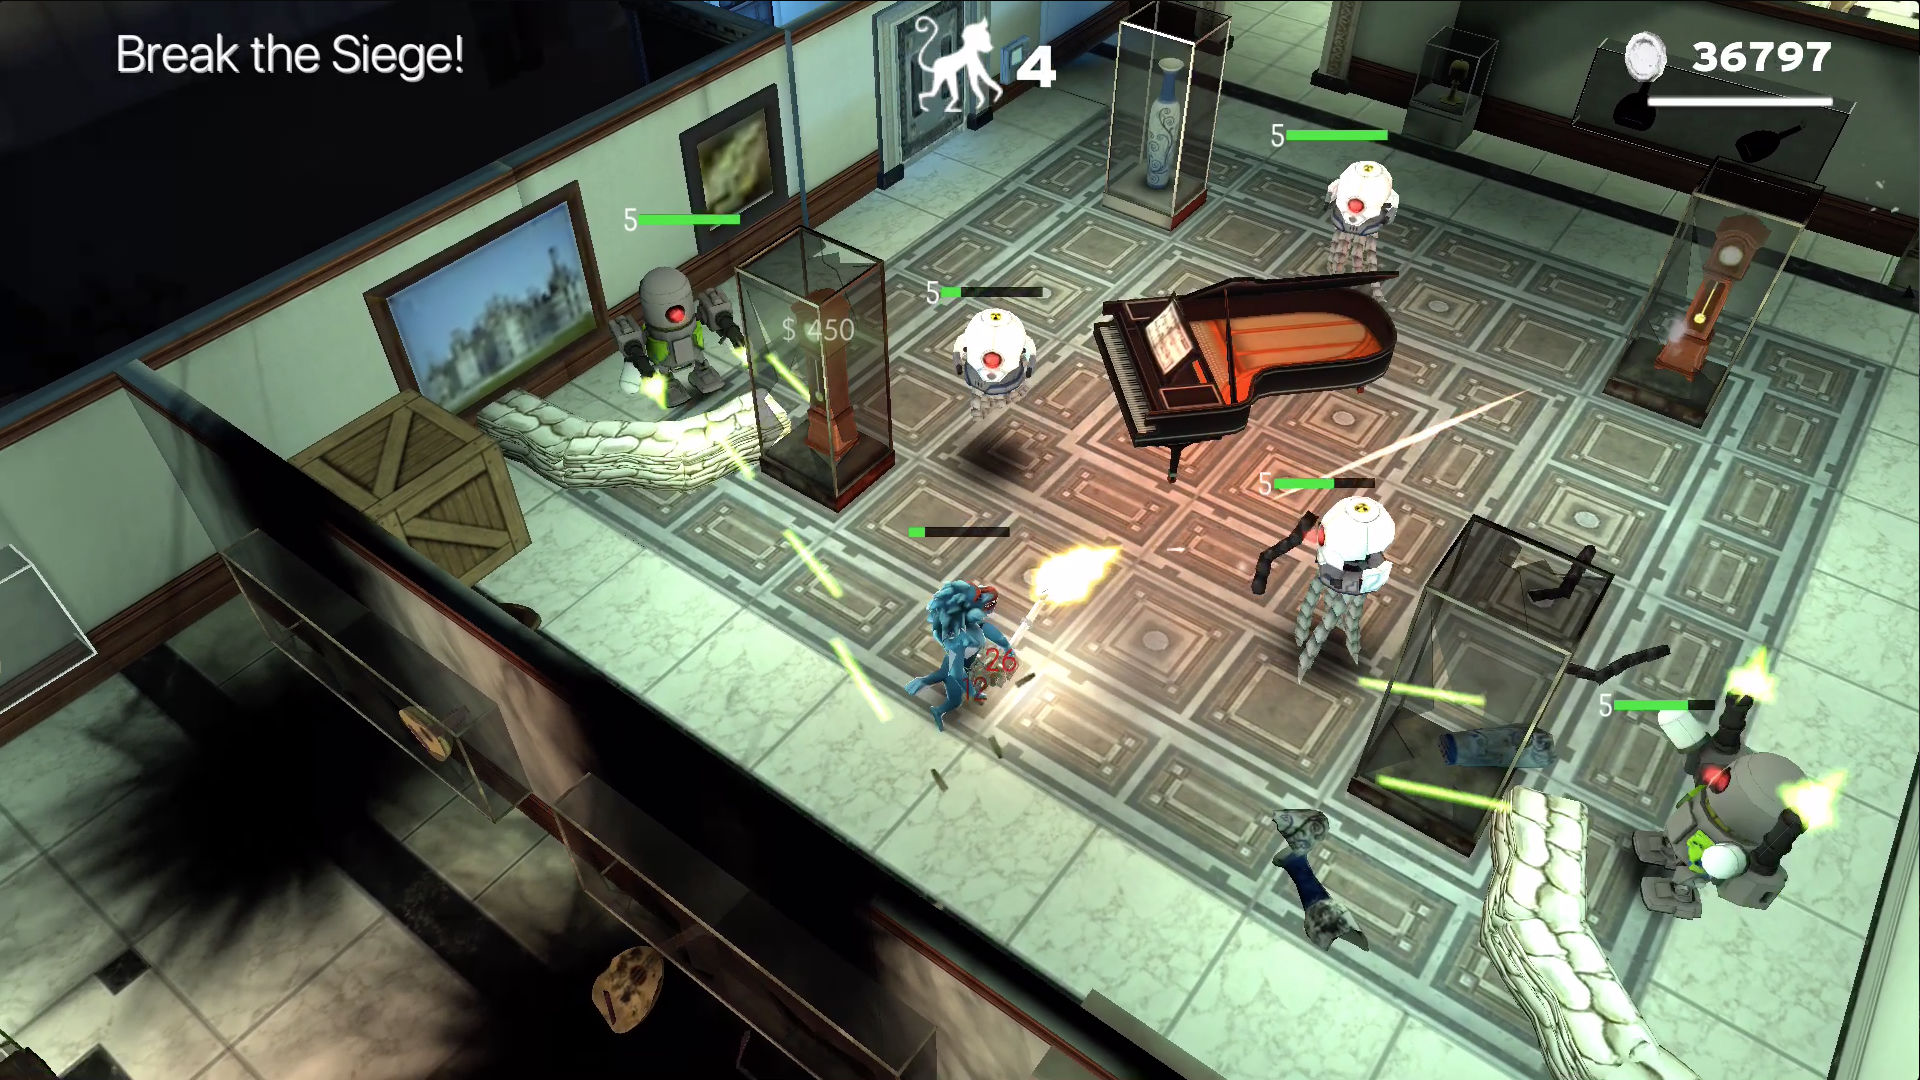 Time Monkeys - Arcade Shooter screenshot 1